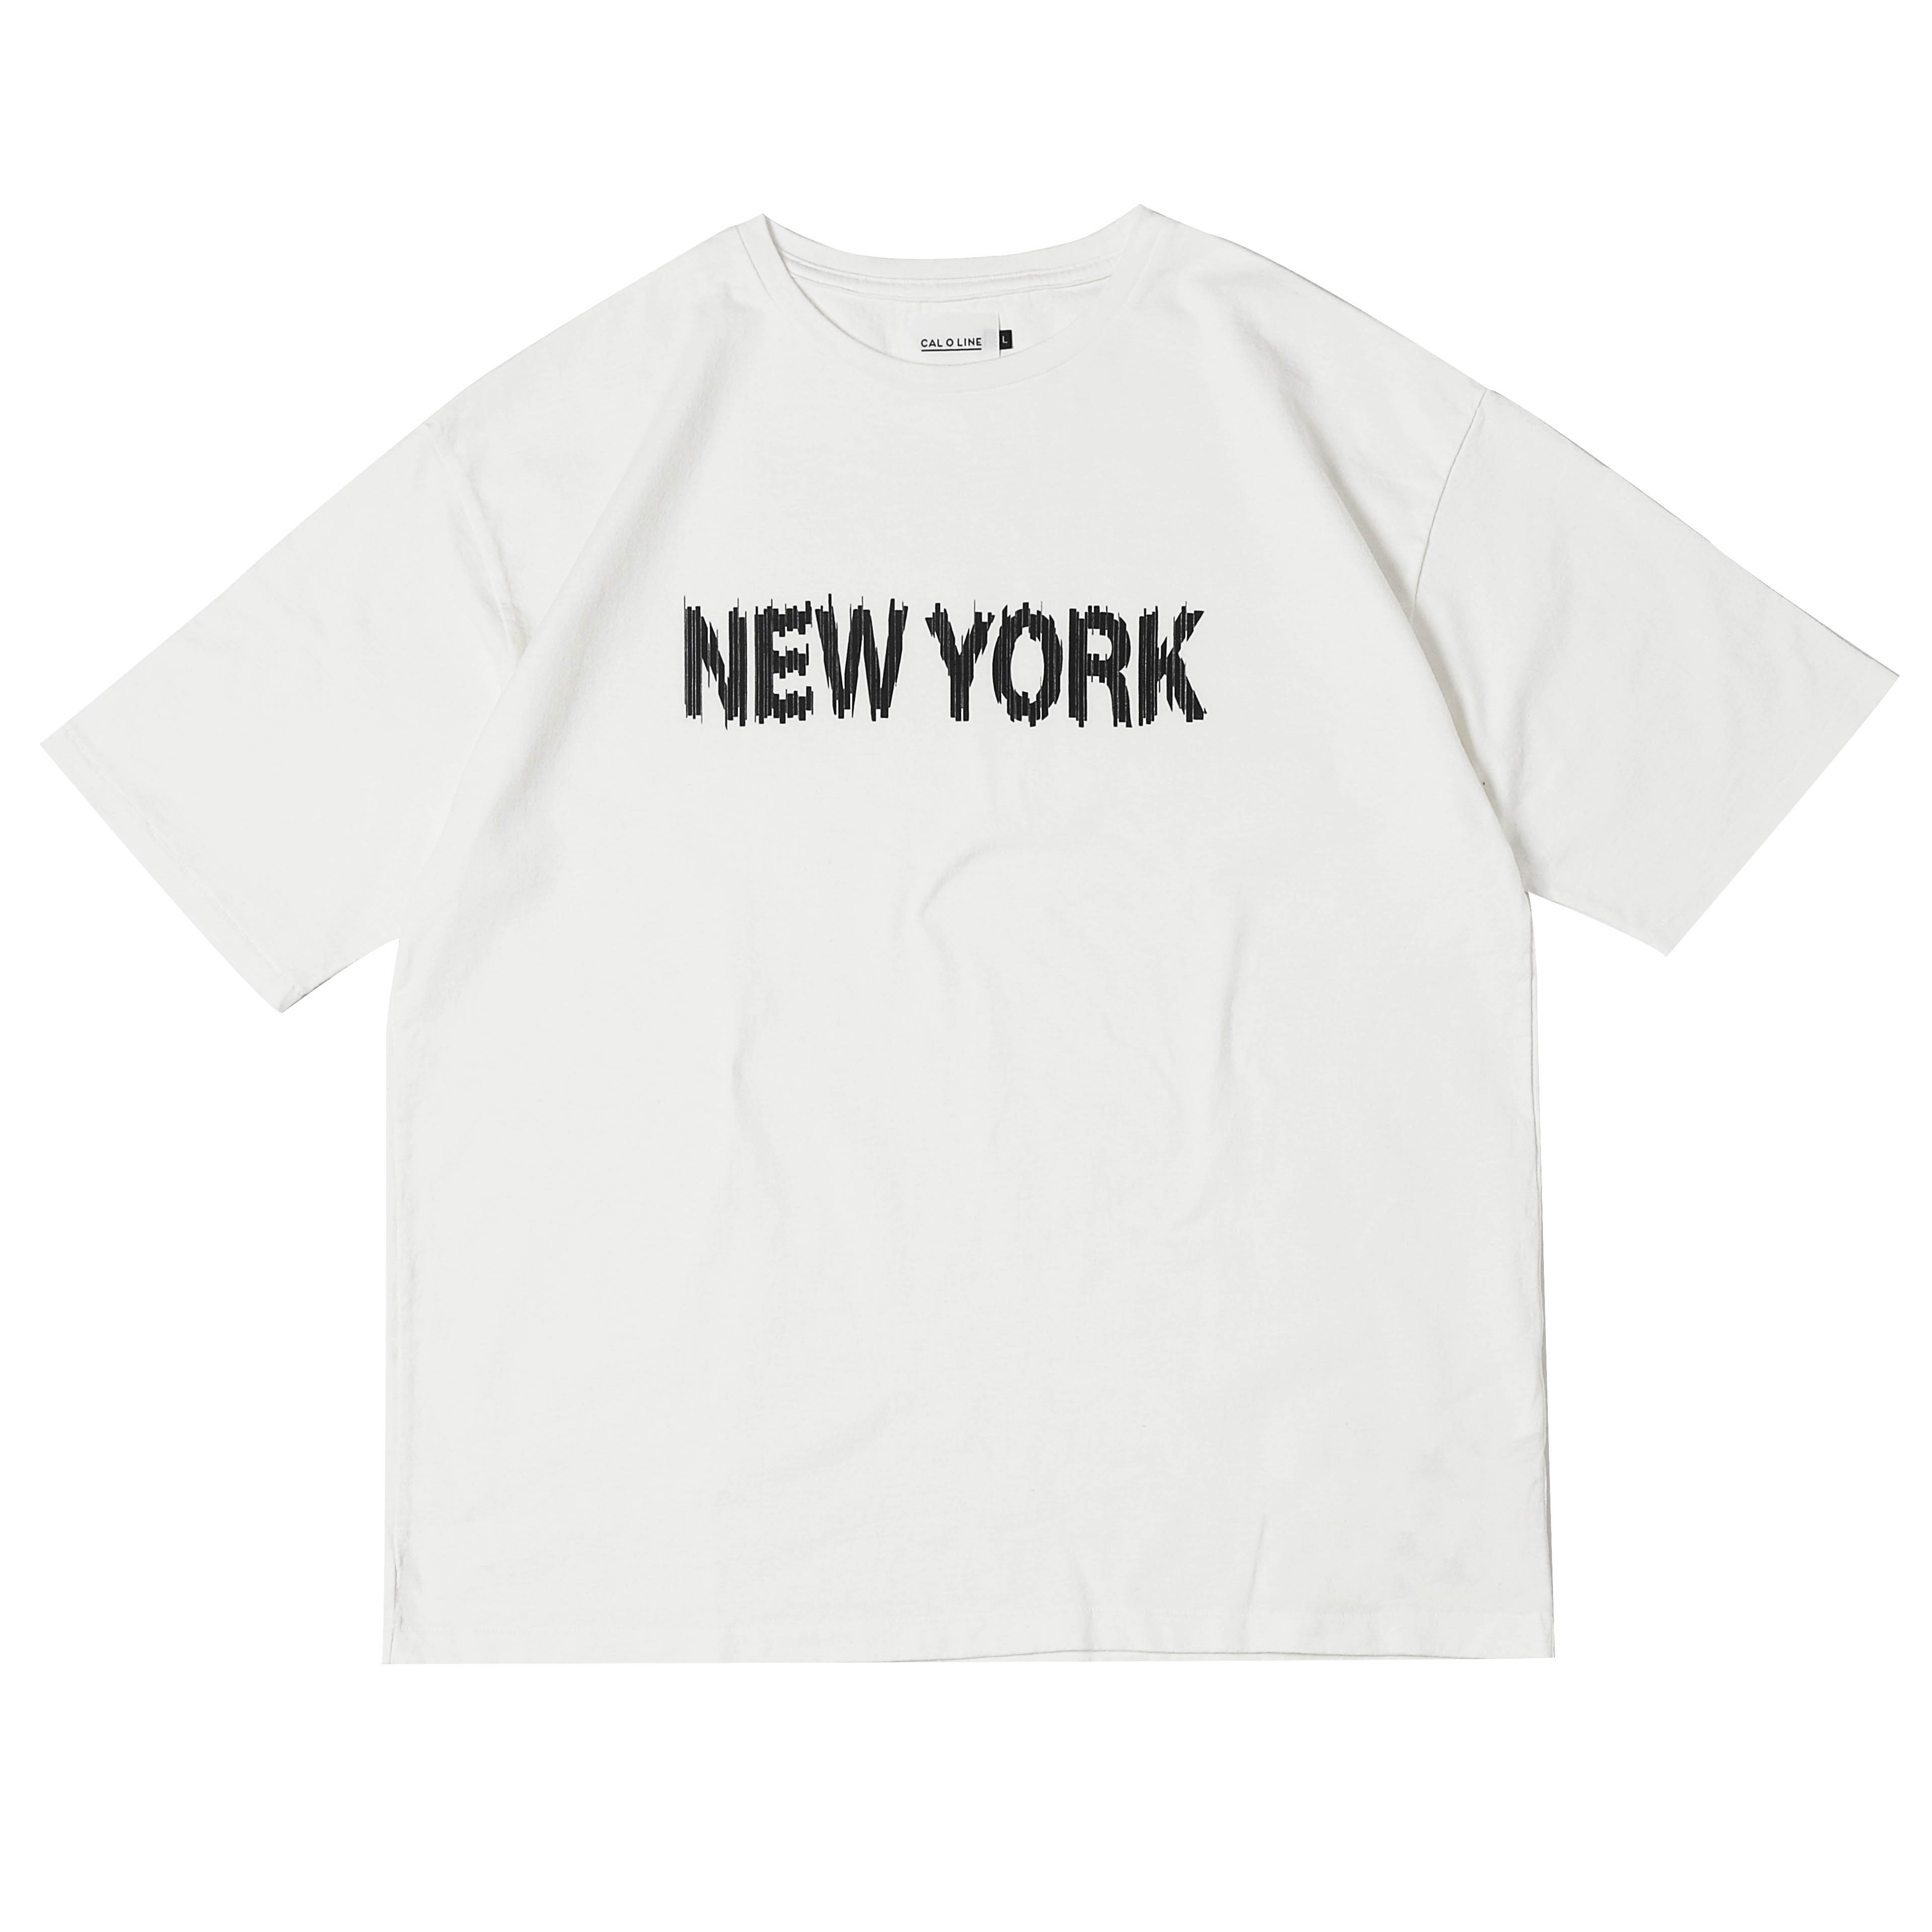 NEW YORK S/S TEE - WHITE